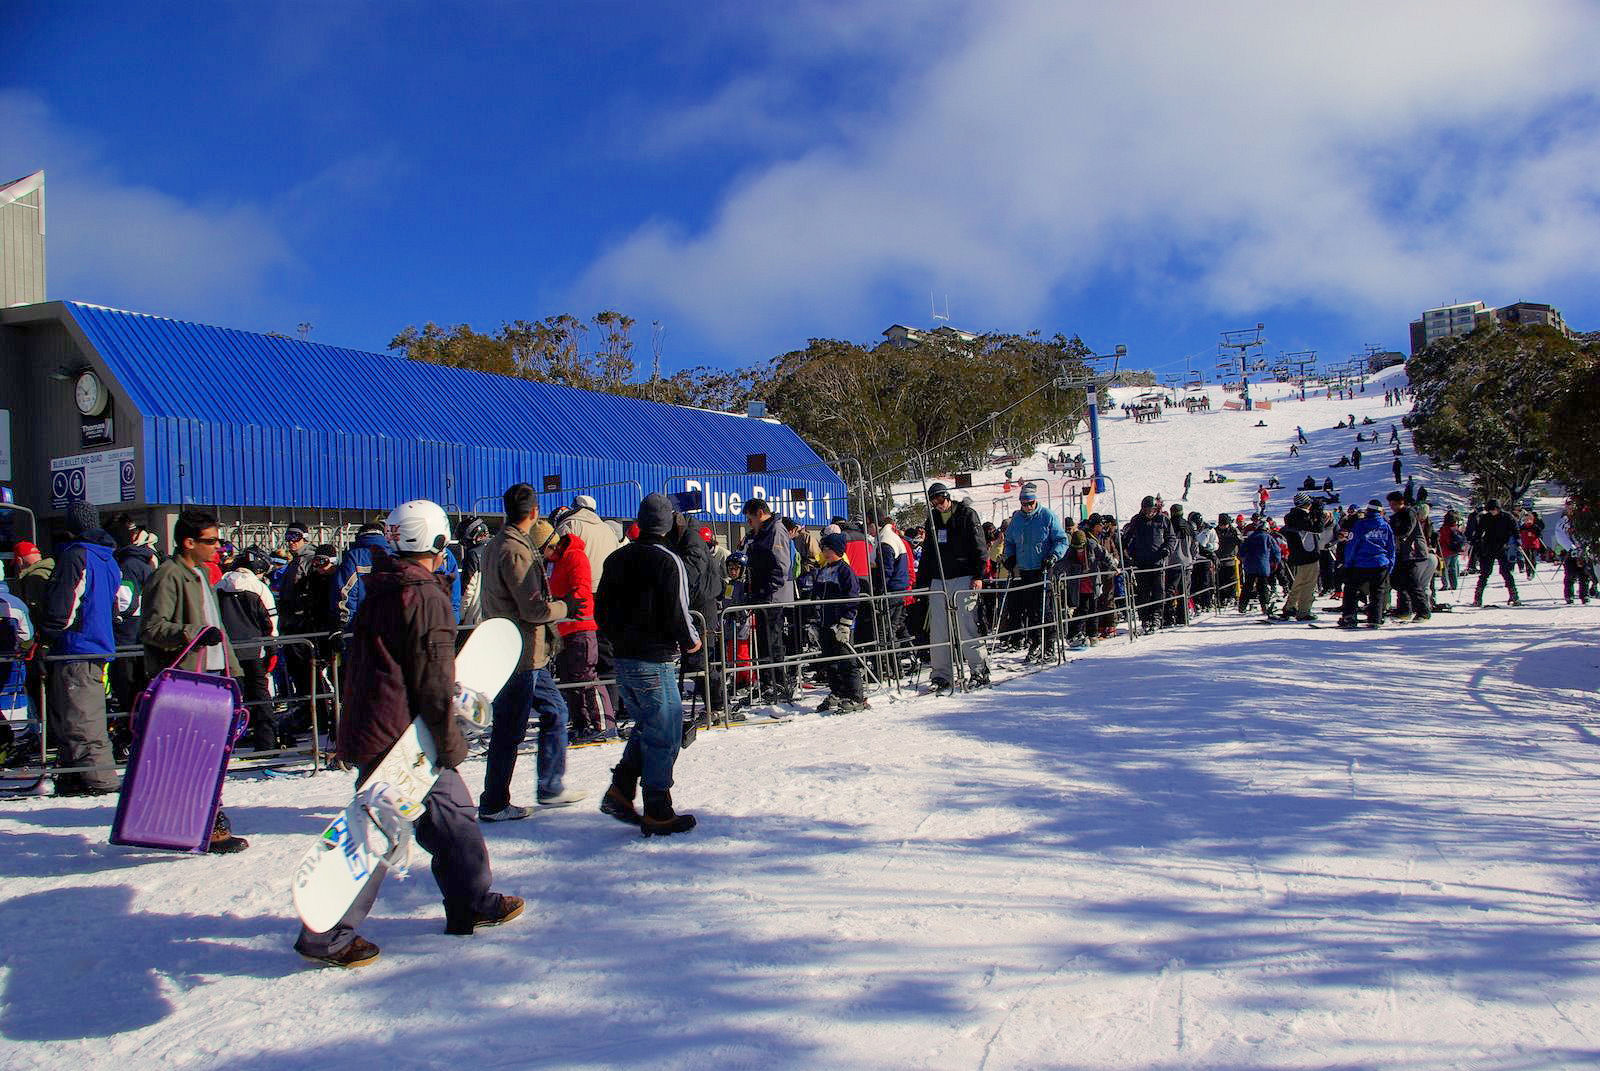 Mount Buller Australia  city photos gallery : Mt Buller Bourke St Stevage 2008 28 11 Wikimedia Commons